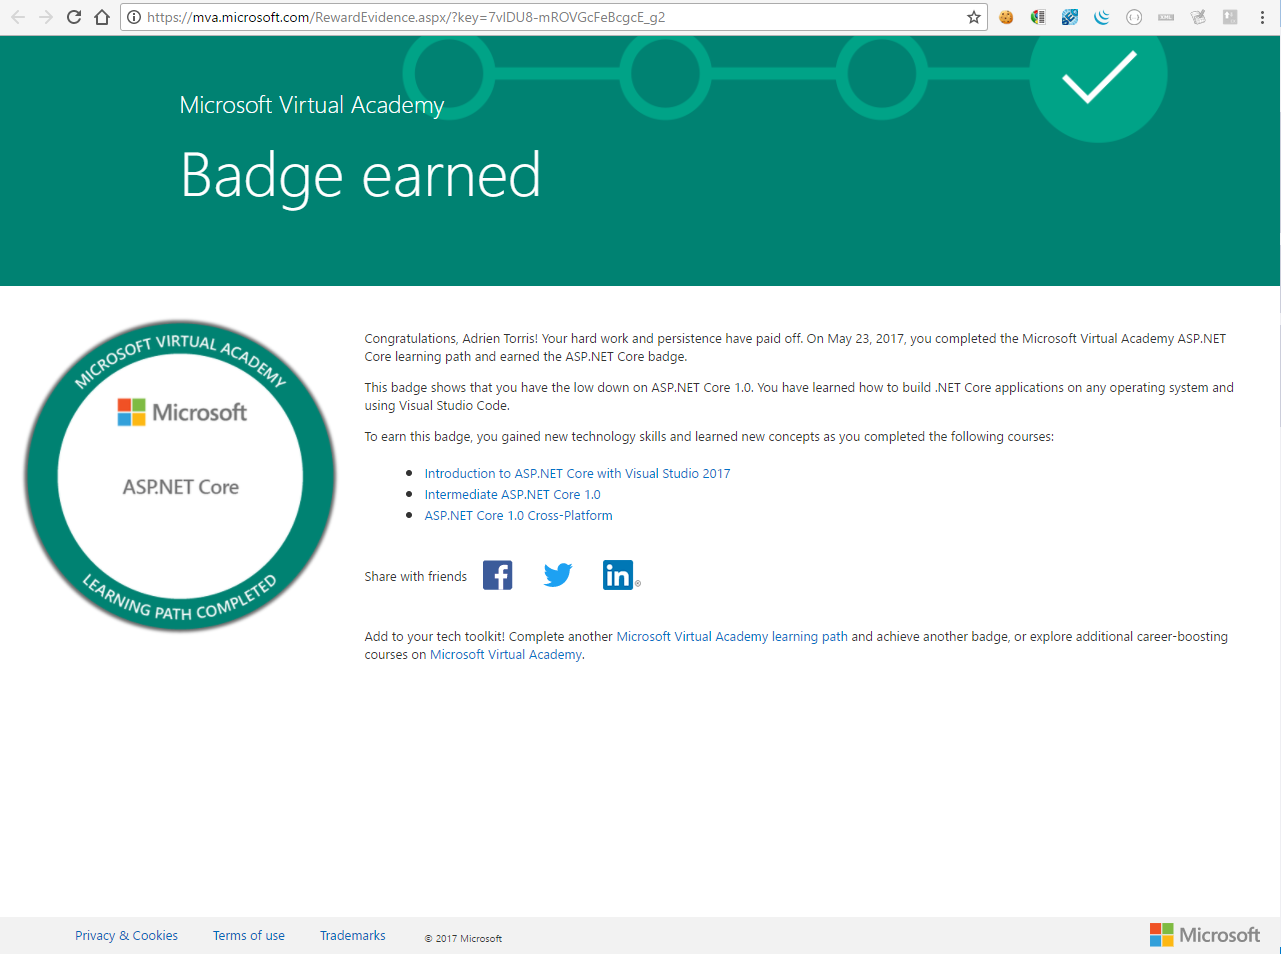 ASP.NET Core Leaning Path completed badge